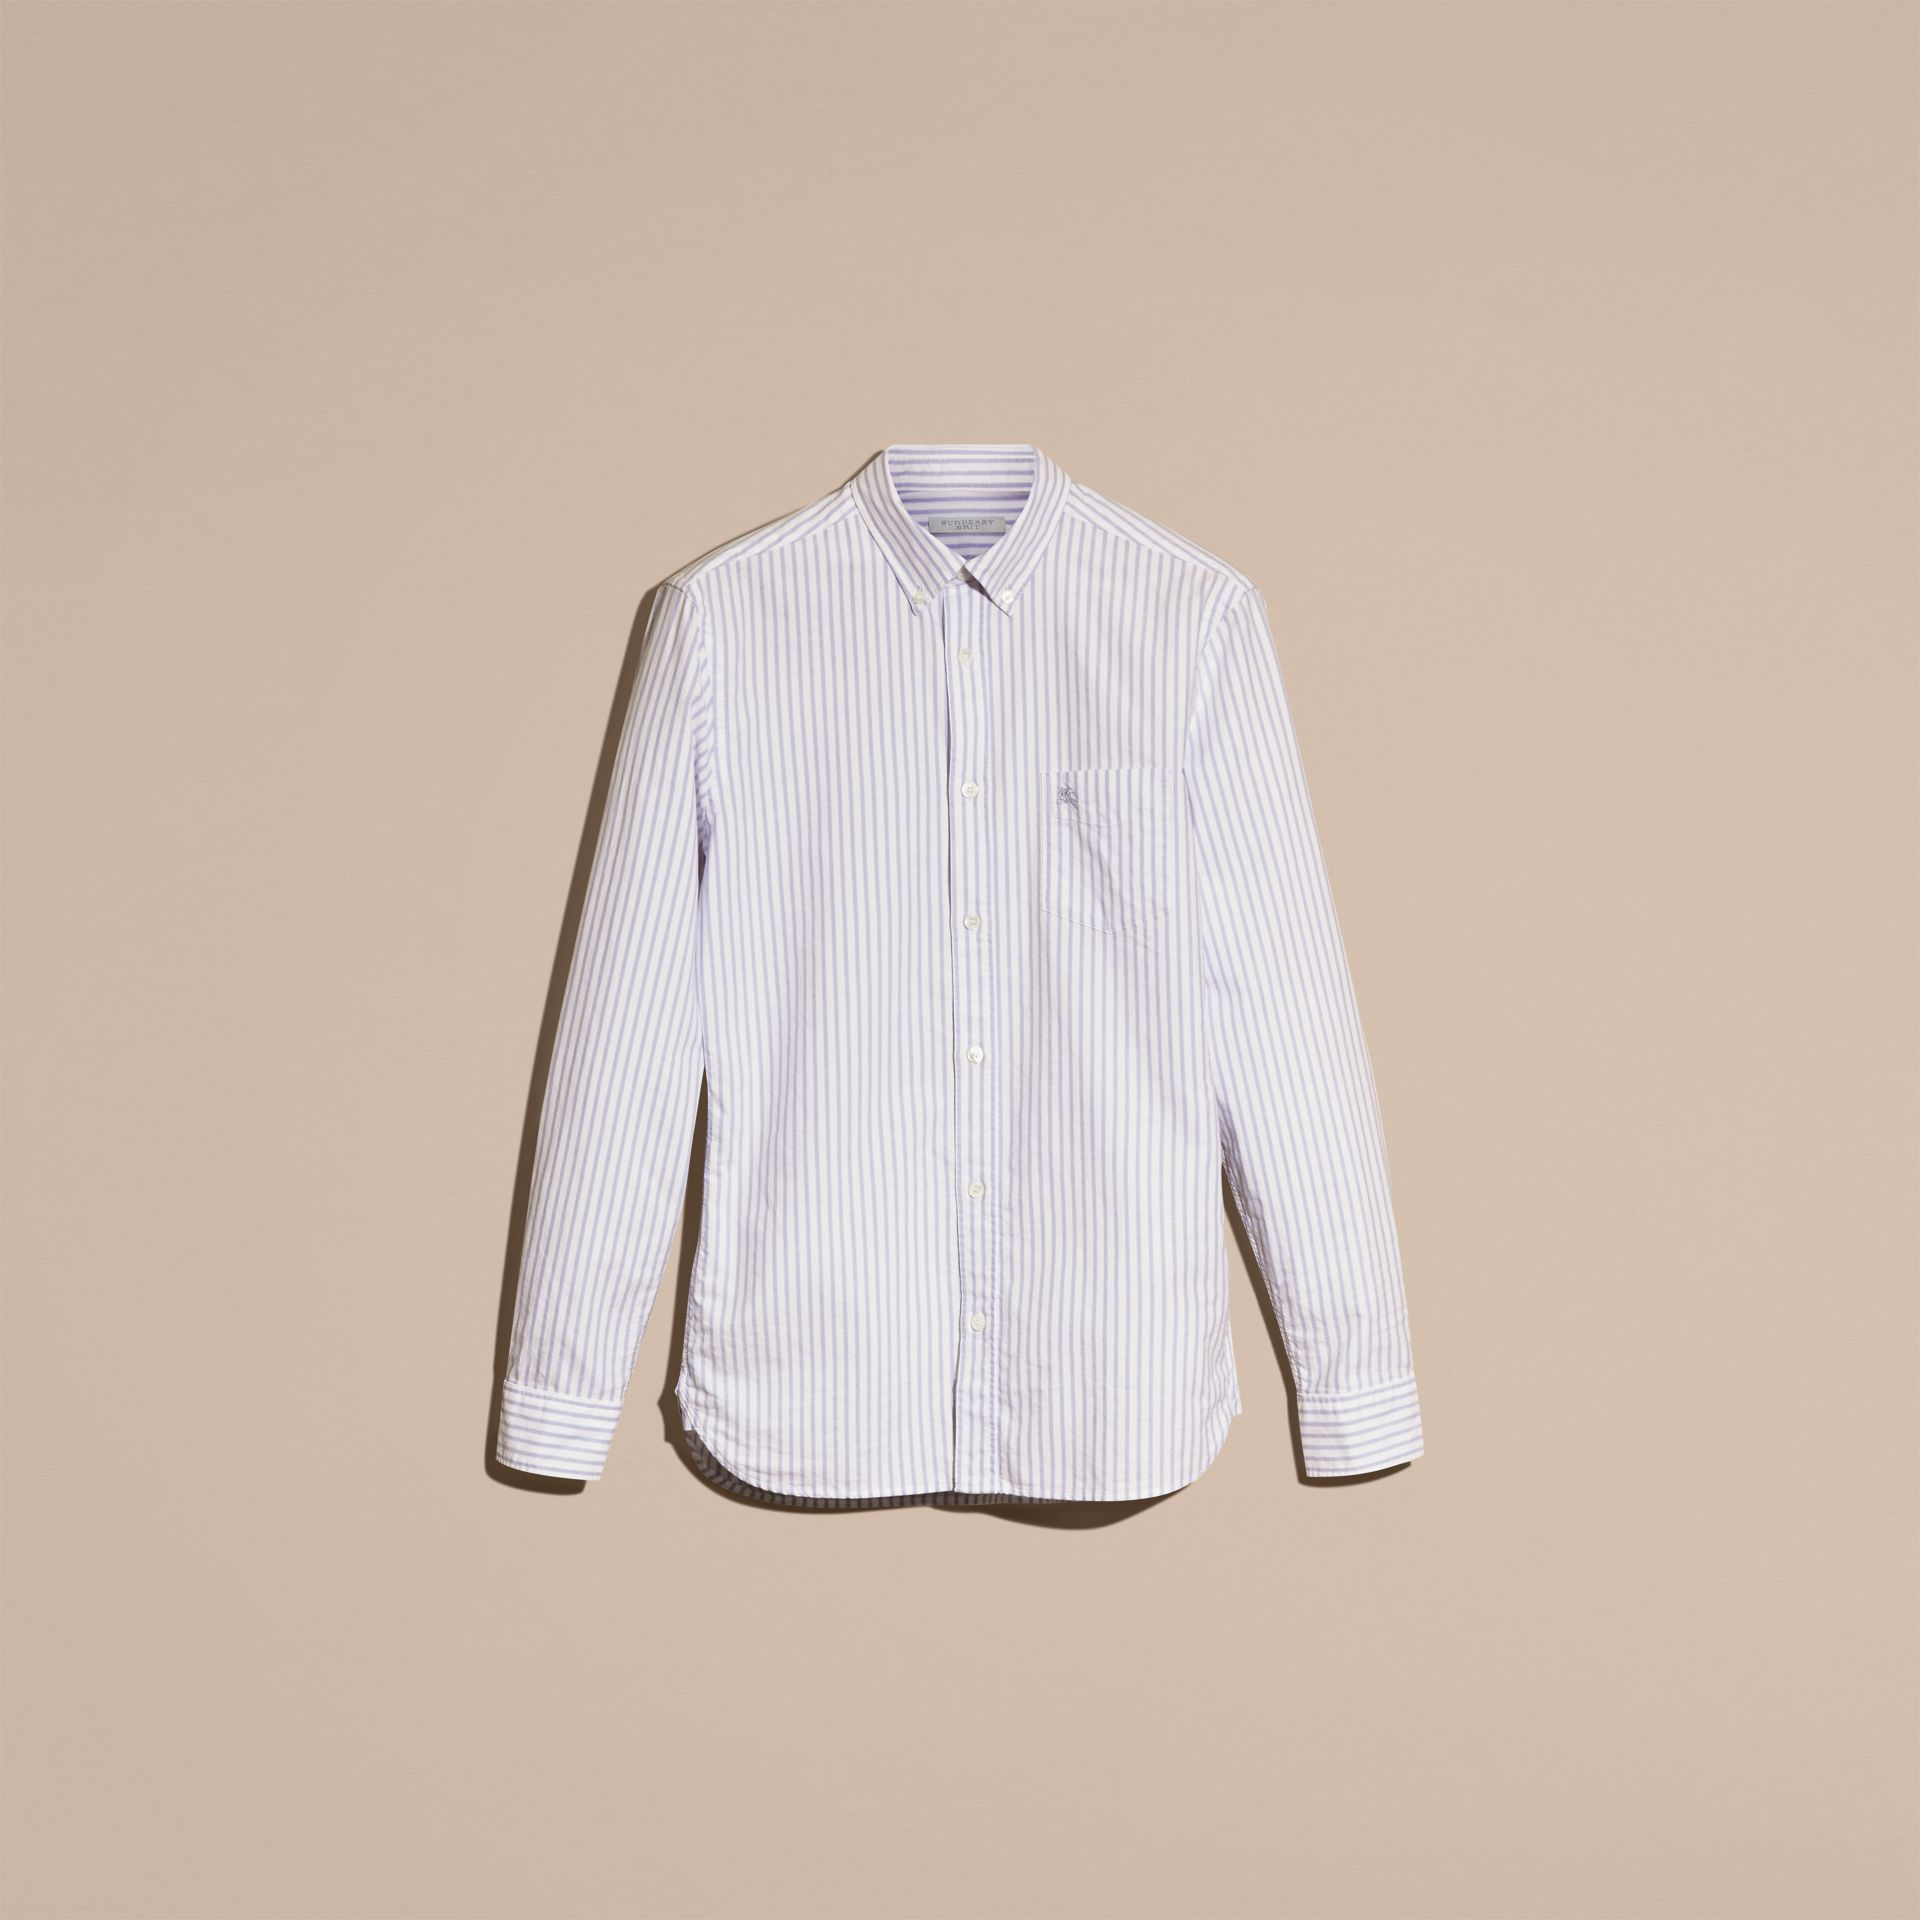 Pale blue Button-down Collar Oxford Stripe Cotton Shirt Pale Blue - gallery image 3